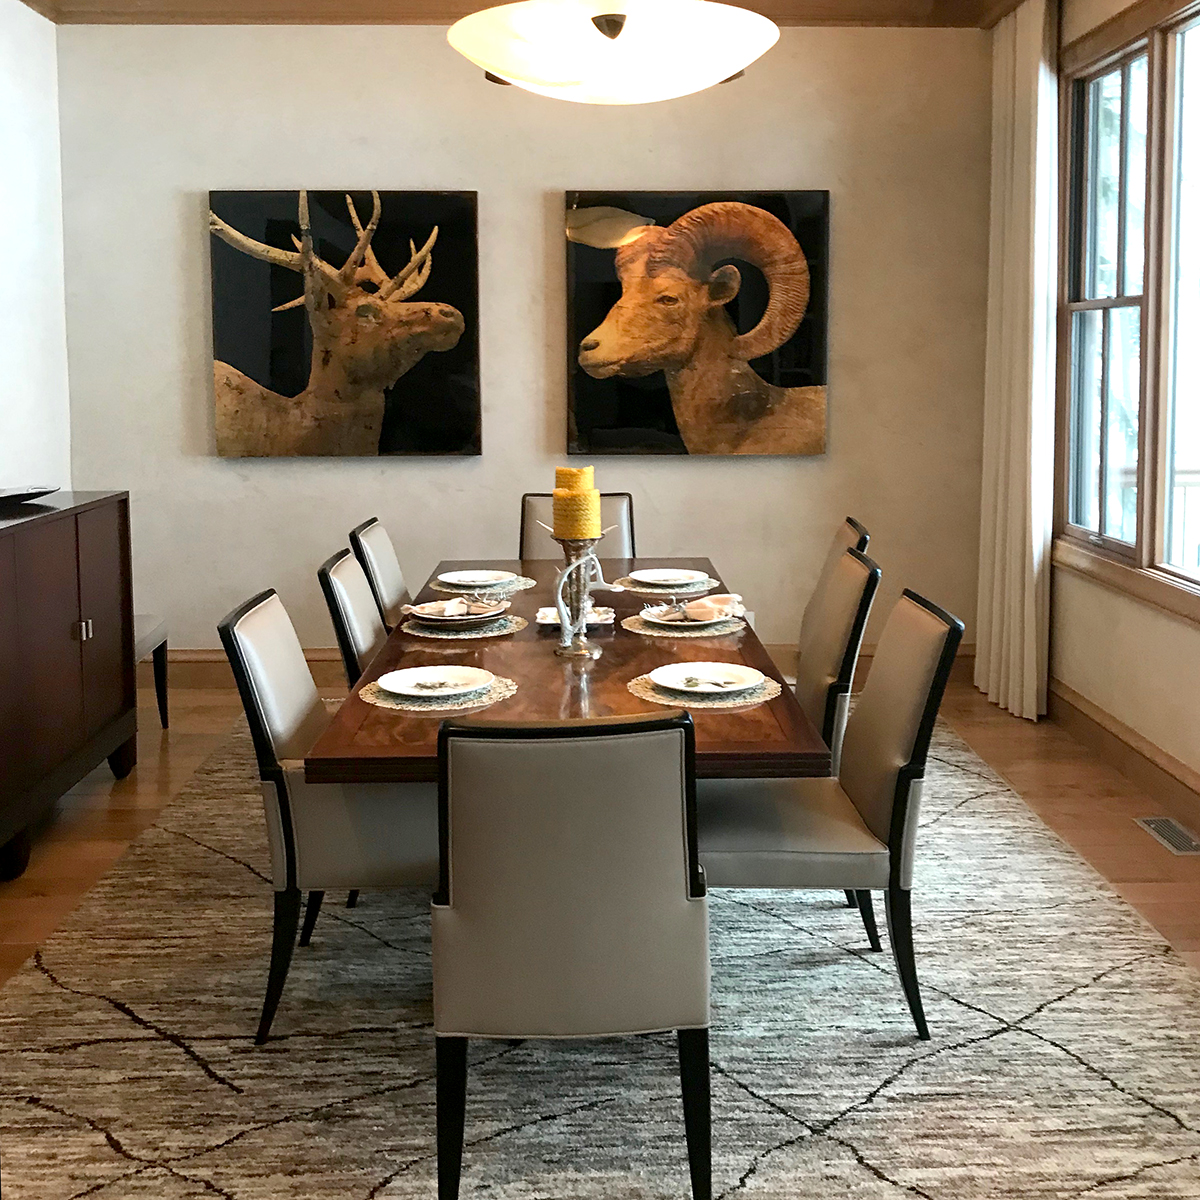 Mike Weber artwork in situ, dining room interior